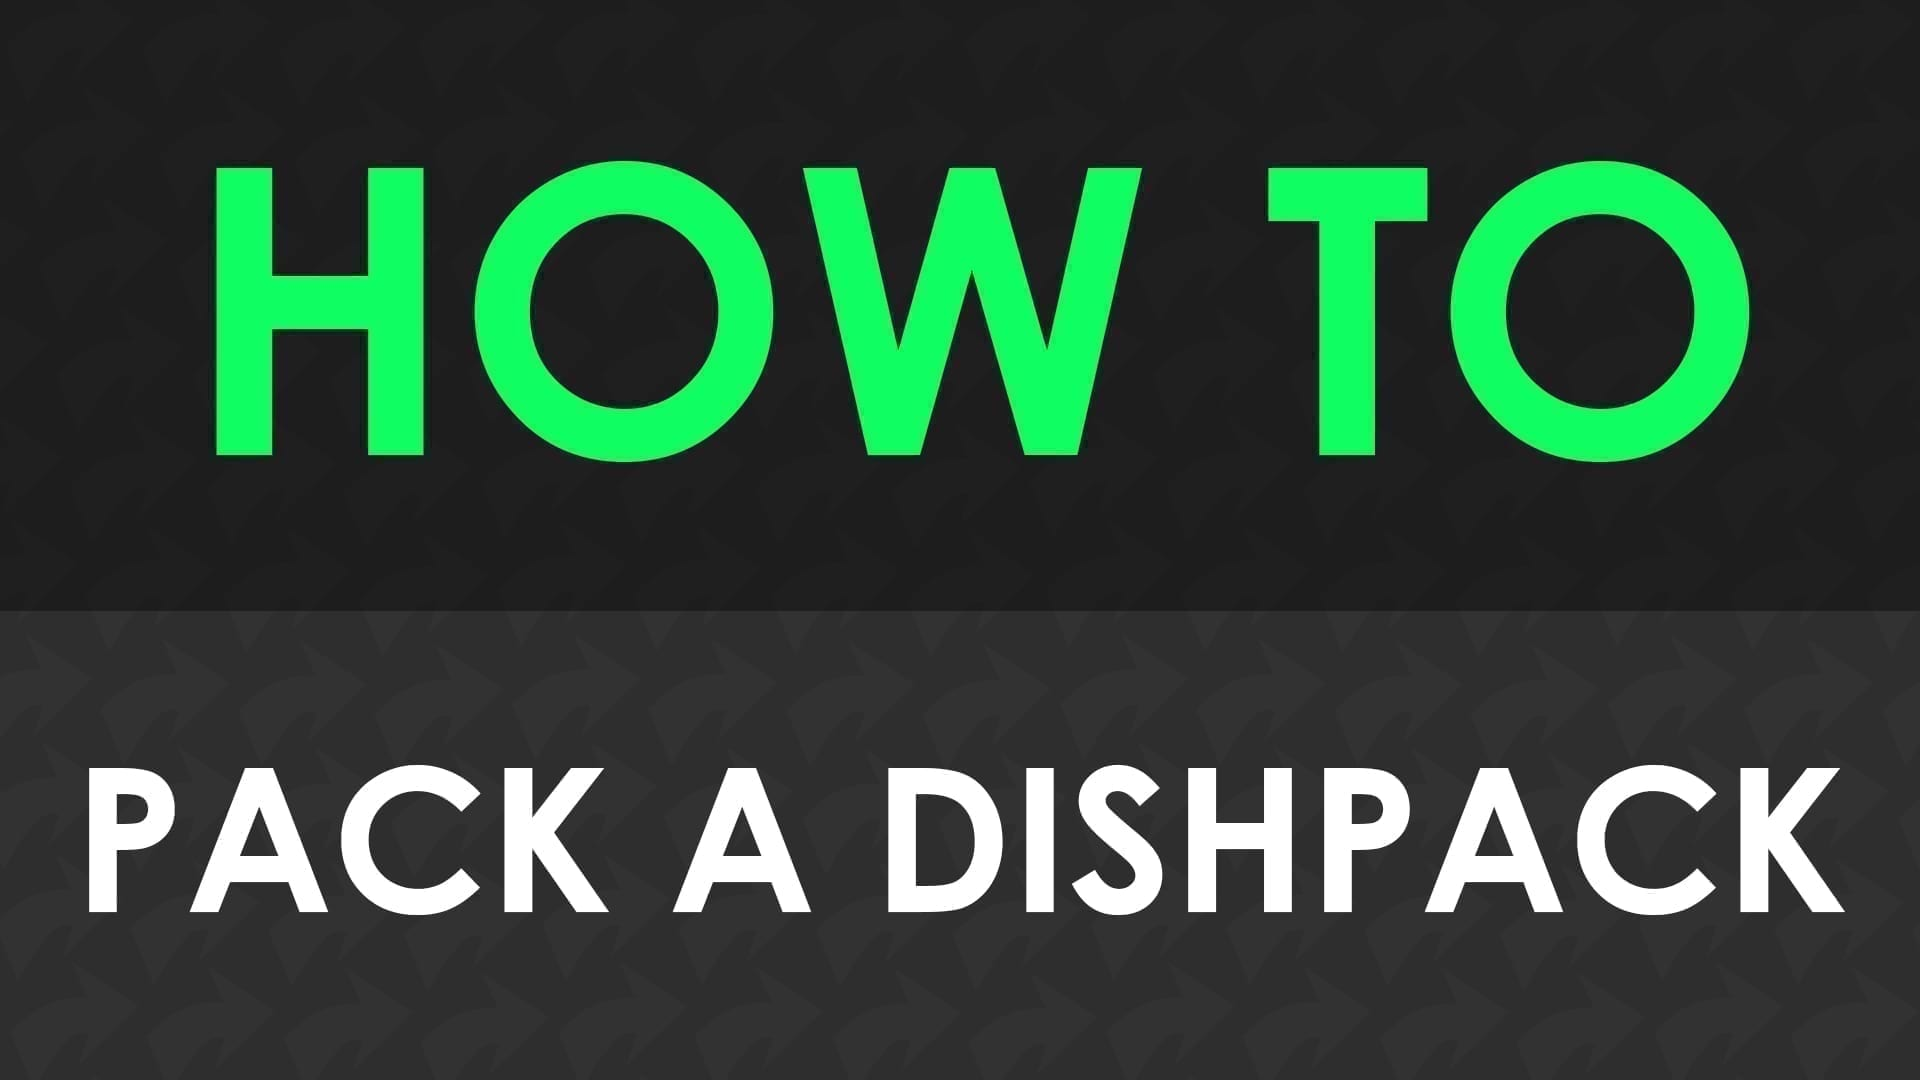 How to pack a dishpack title card